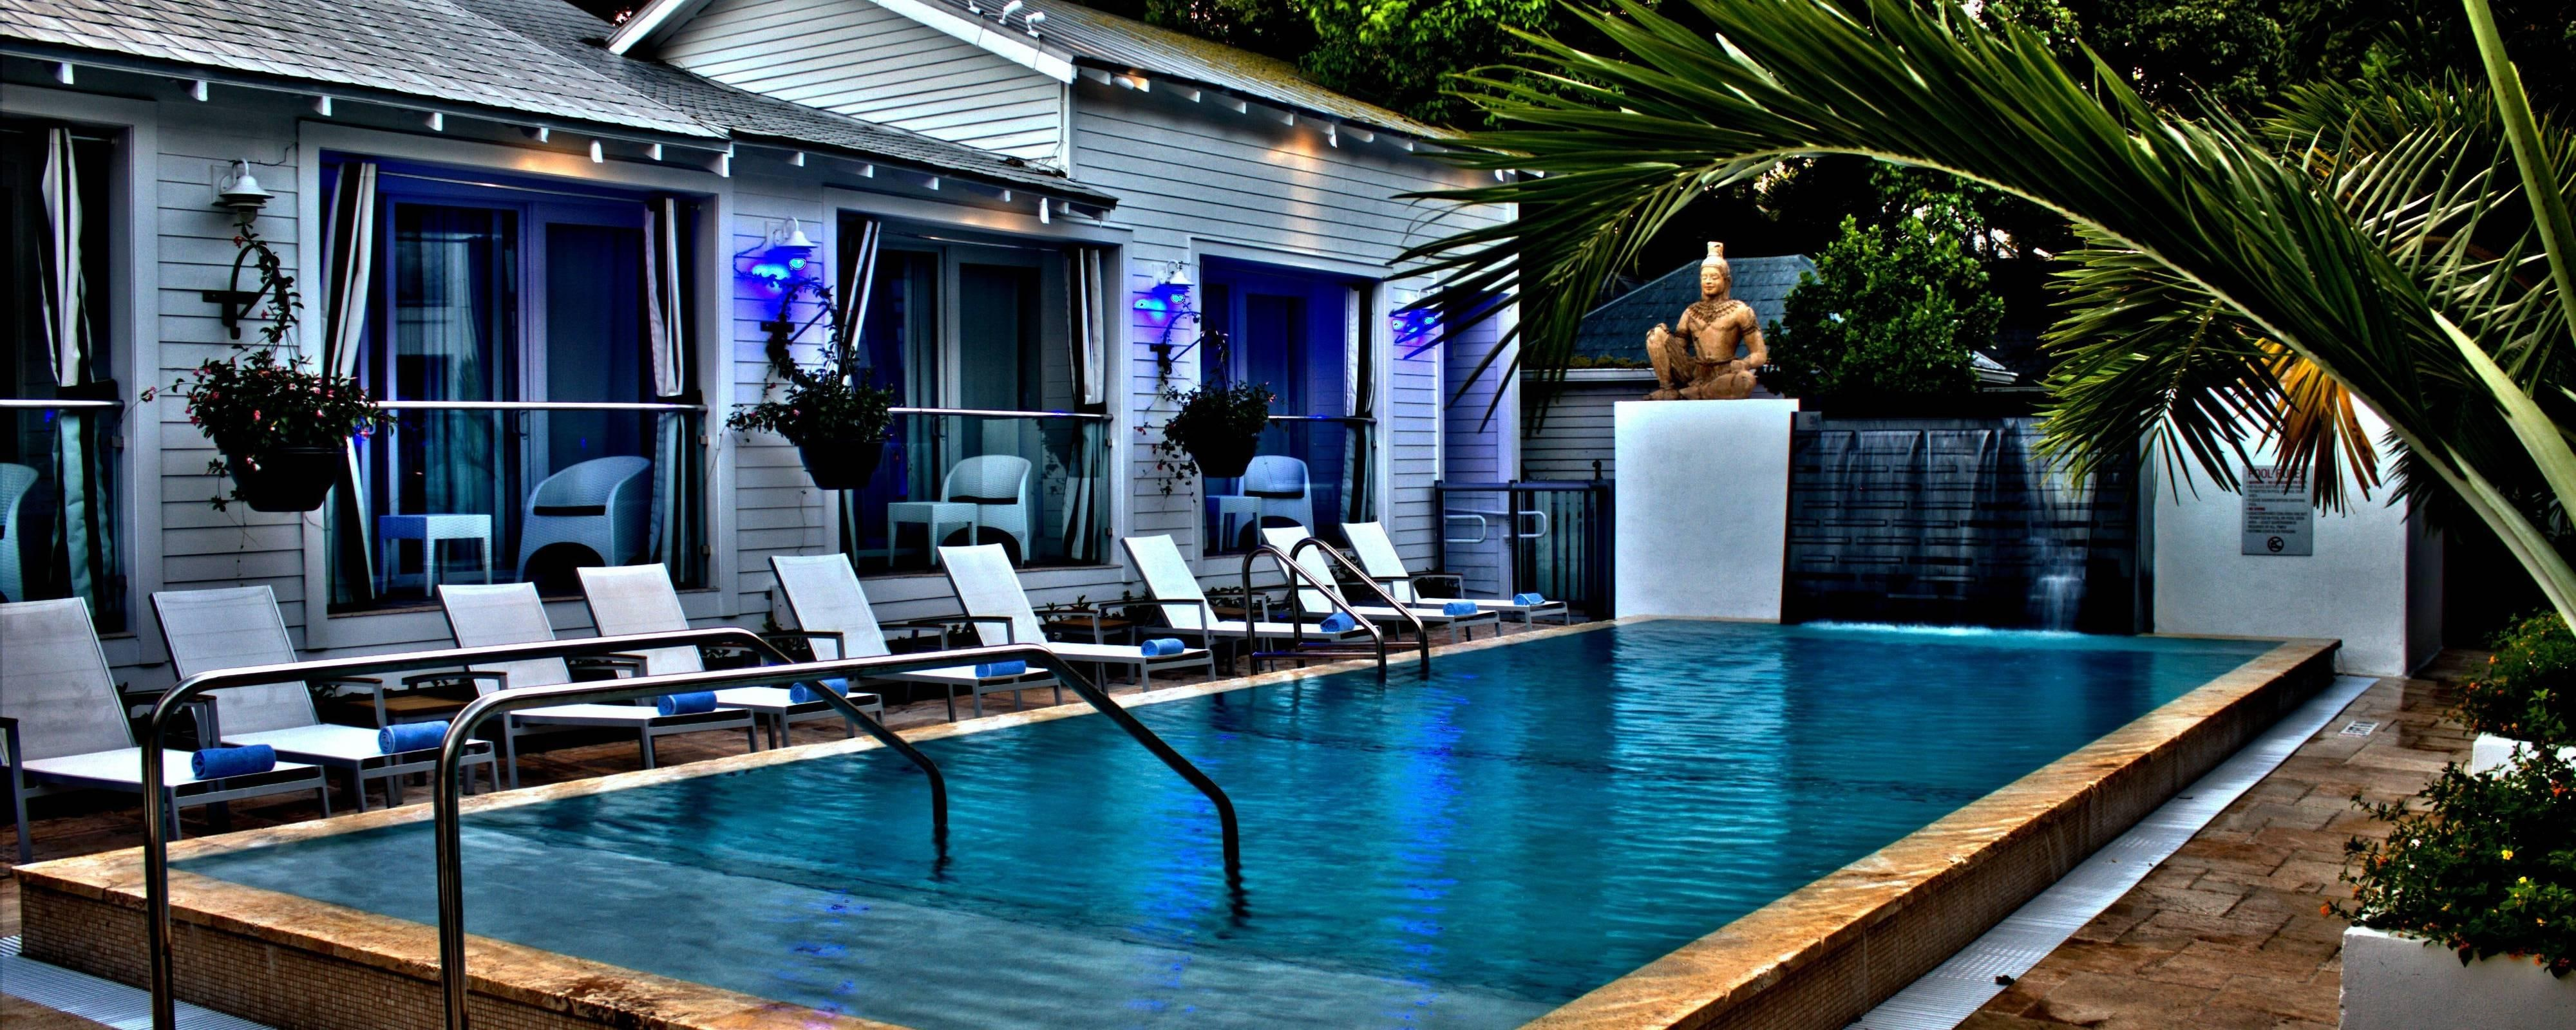 The Saint Hotel Key West - Piscina al aire libre